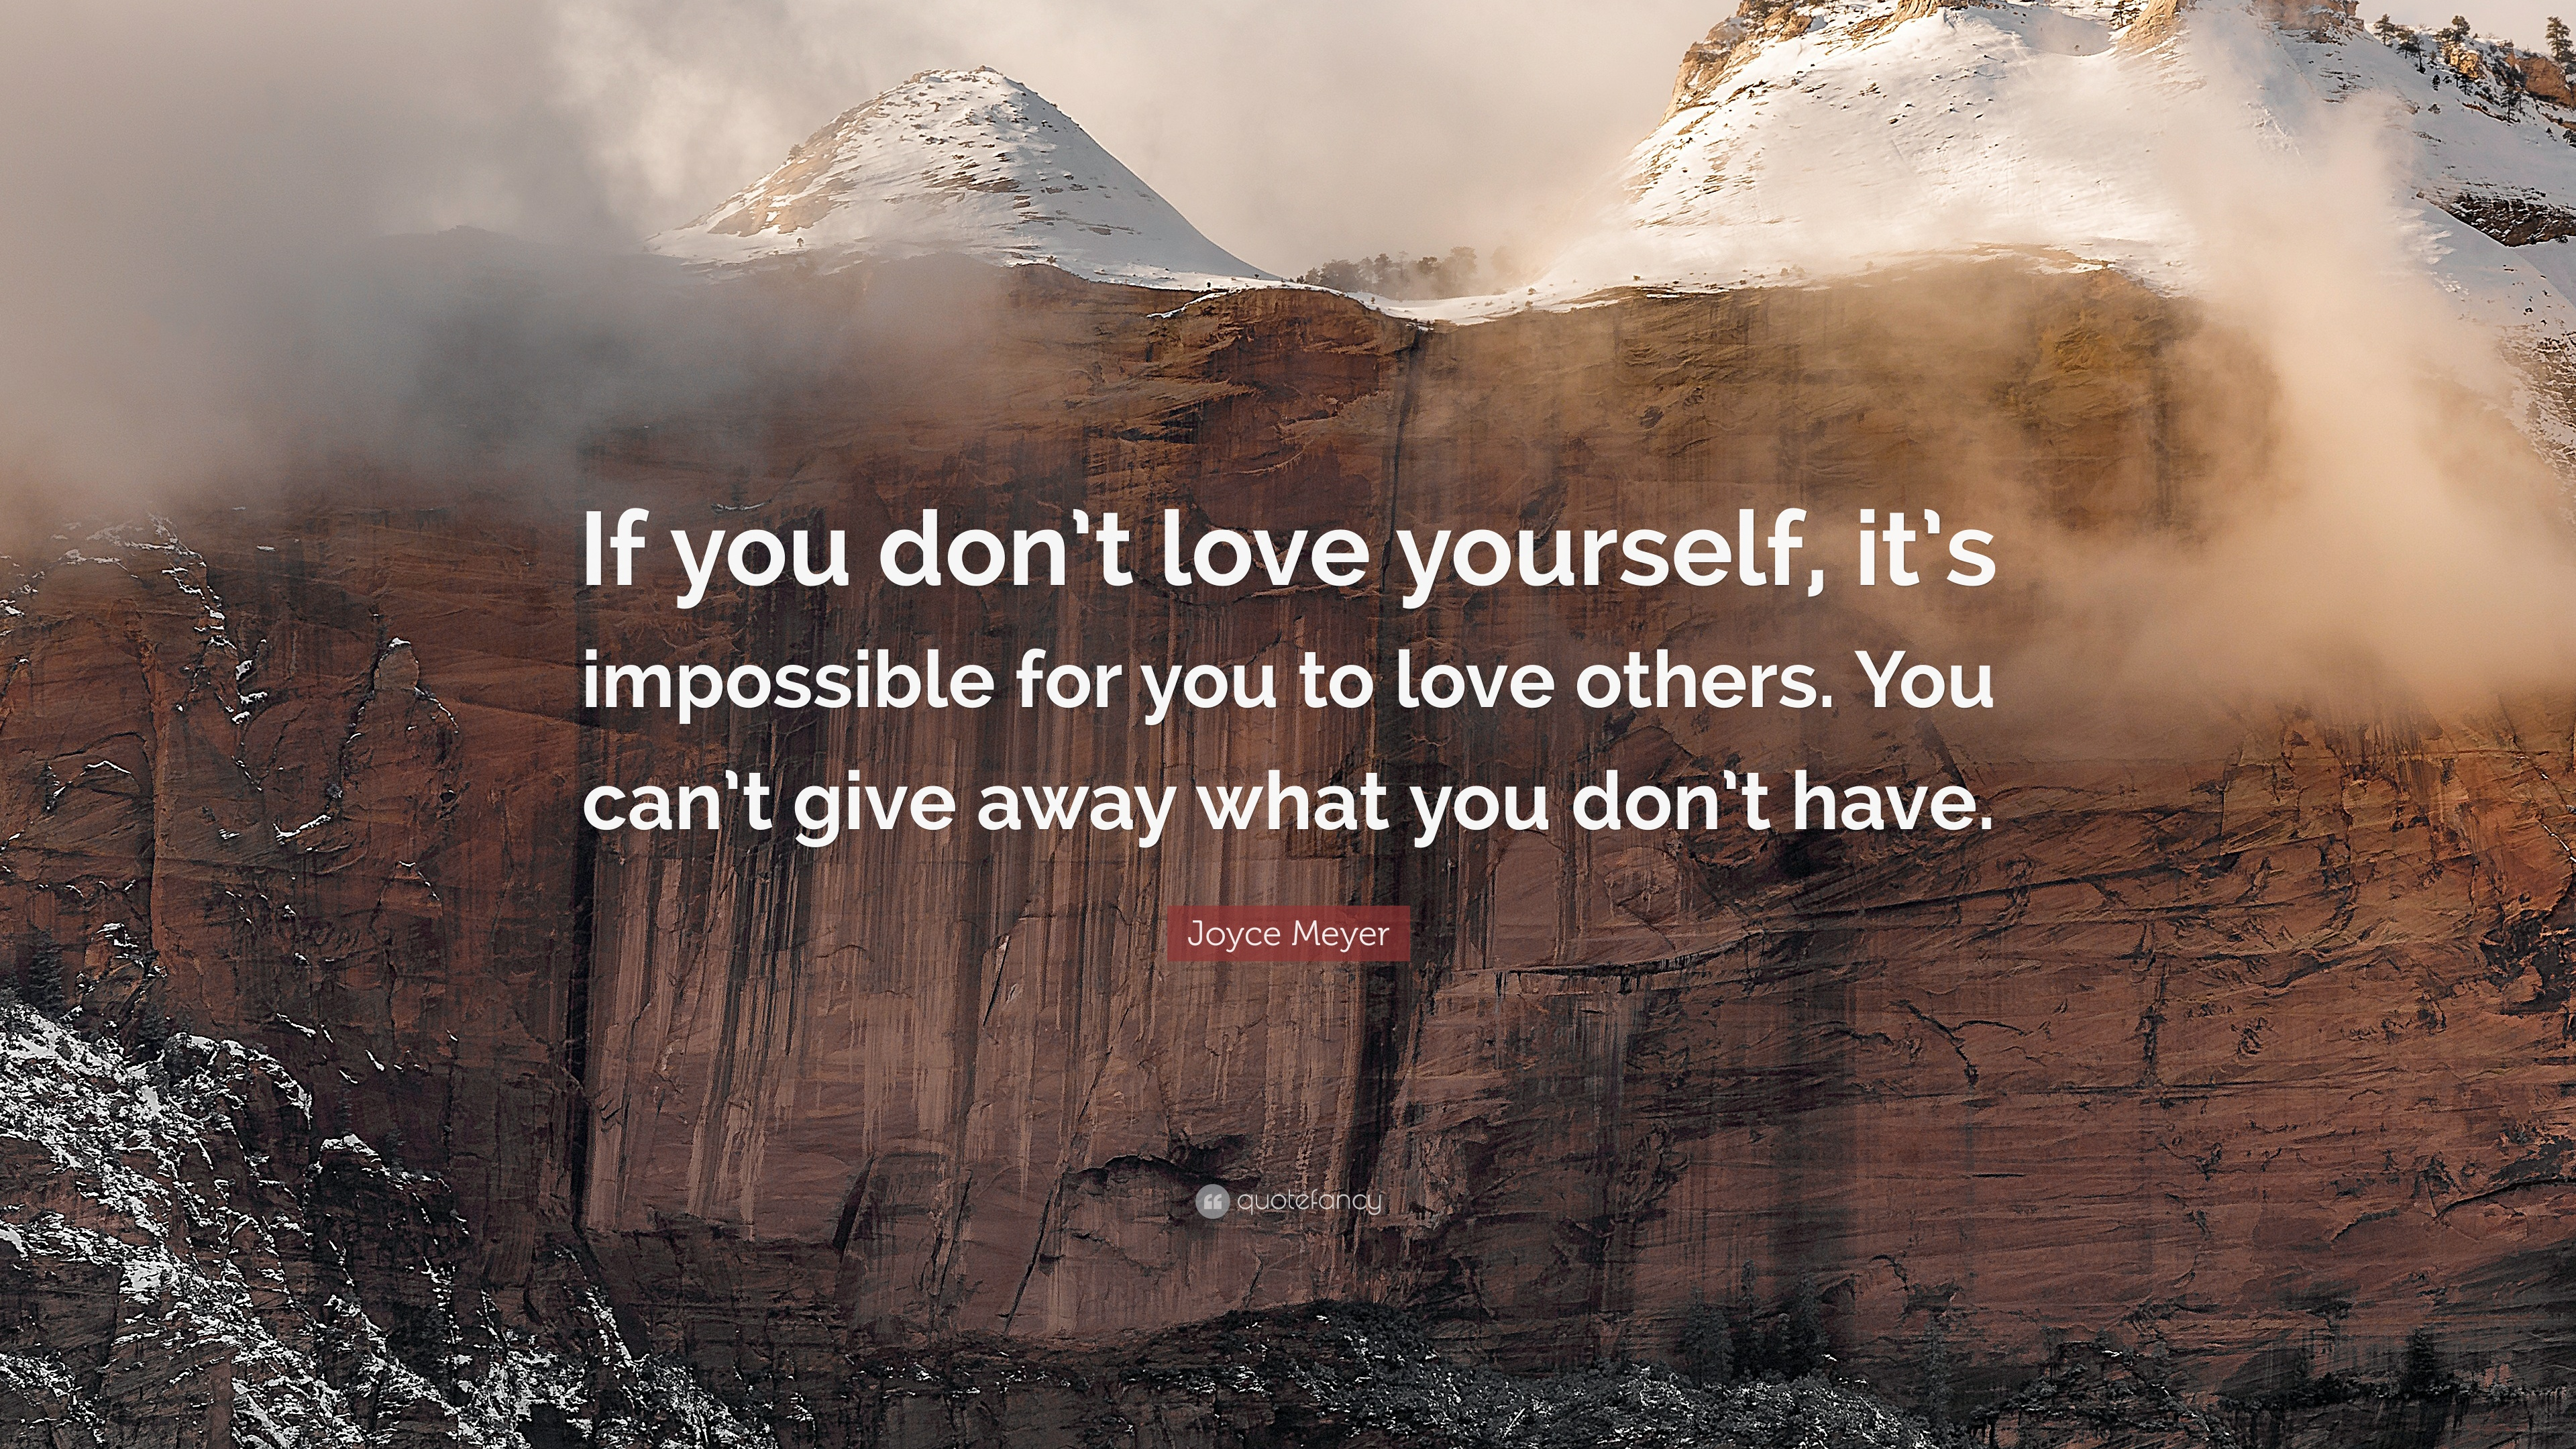 Awesome Joyce Meyer Quote: U201cIf You Donu0027t Love Yourself, Itu0027s Impossible For